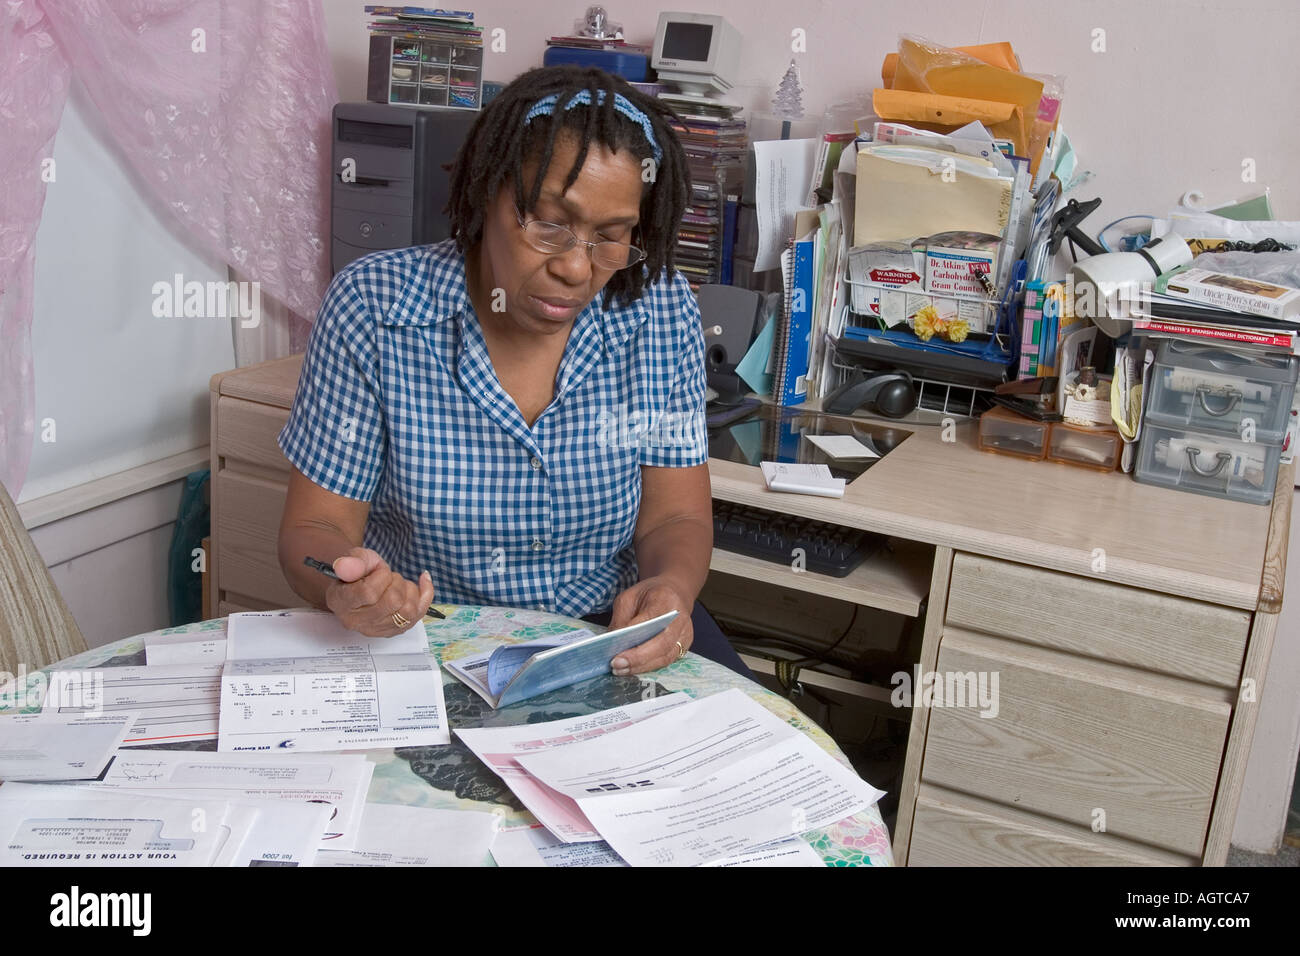 Woman Worries Over Paying Her Bills - Stock Image